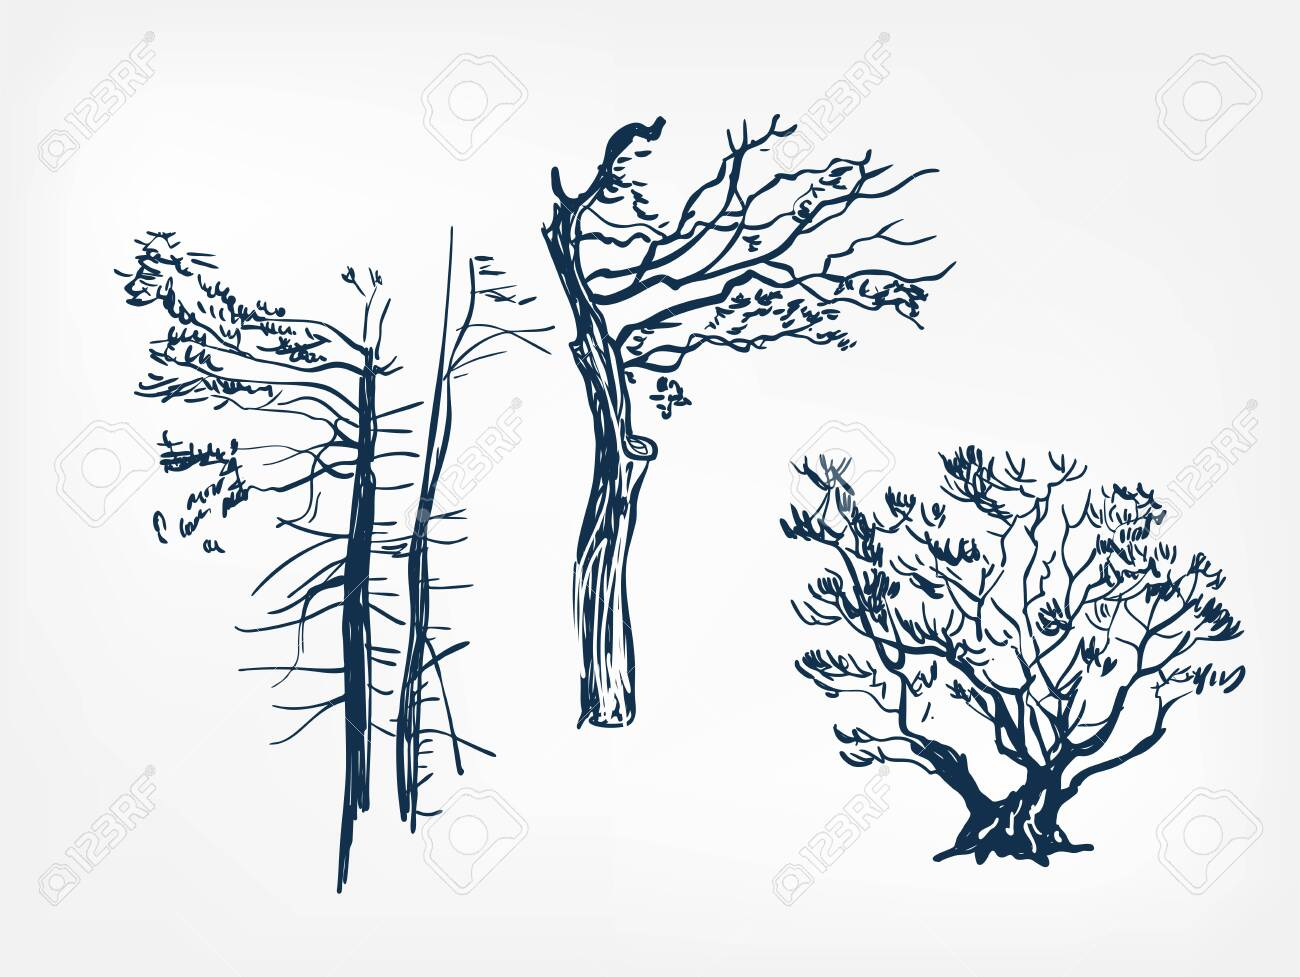 Old Tree Set Design Elements Vector Sketch Illustration Japanese Royalty Free Cliparts Vectors And Stock Illustration Image 142201632